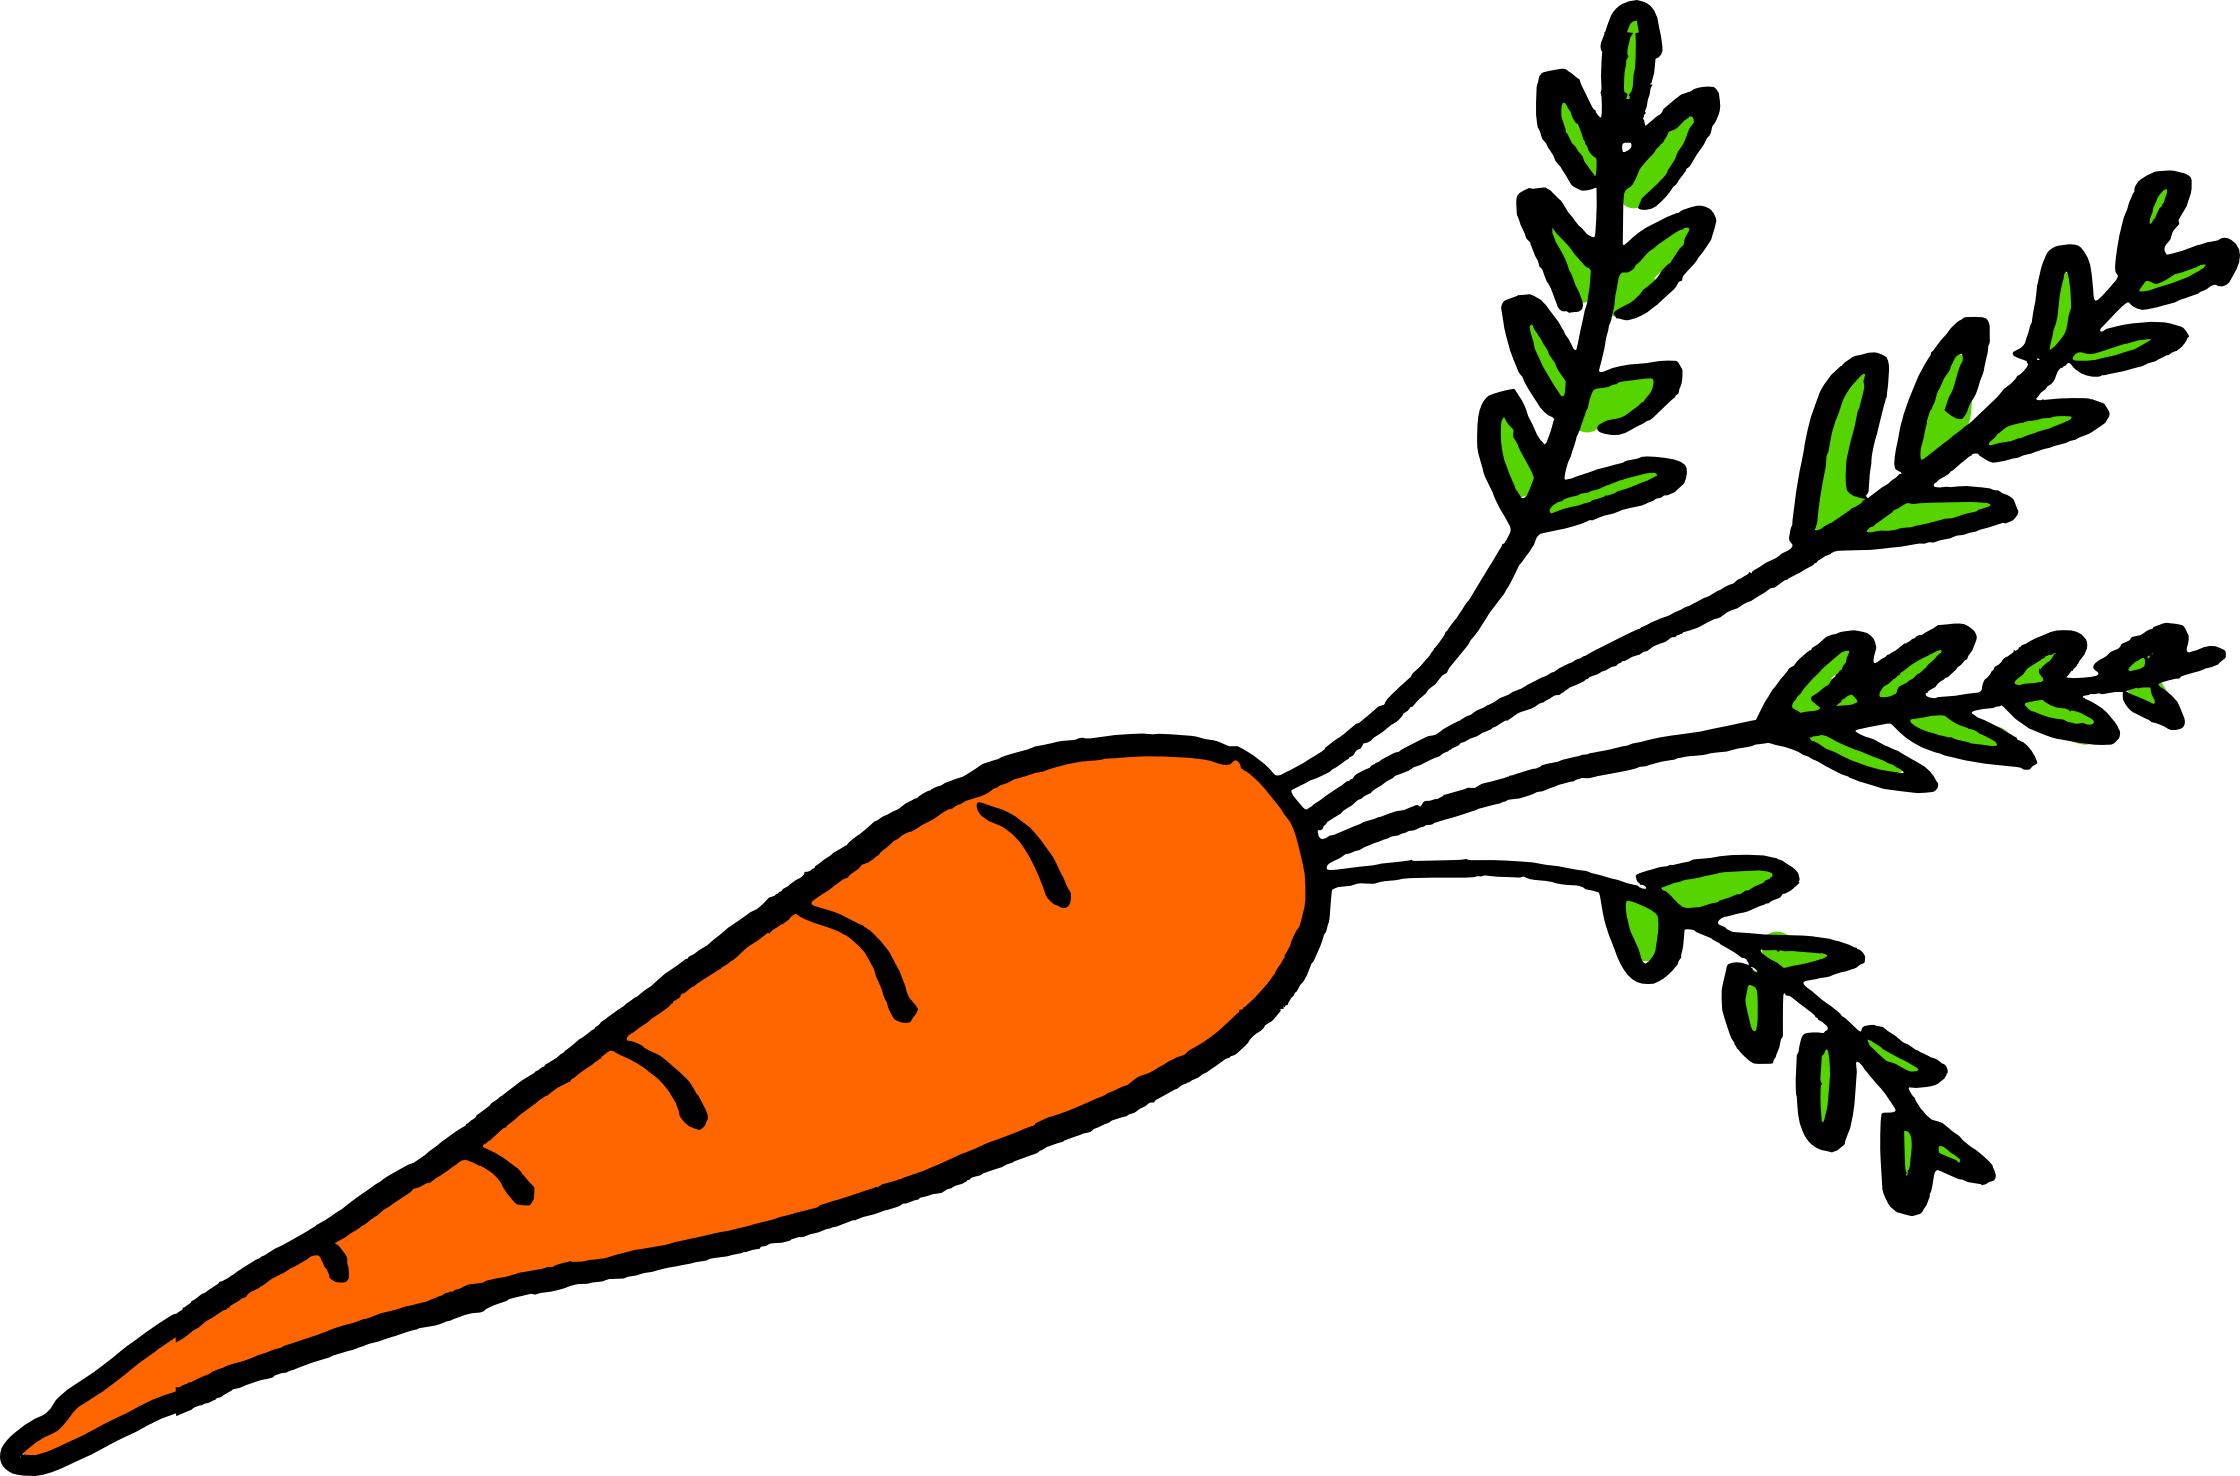 Potatoes drawing underground. Carrot jpg transparent